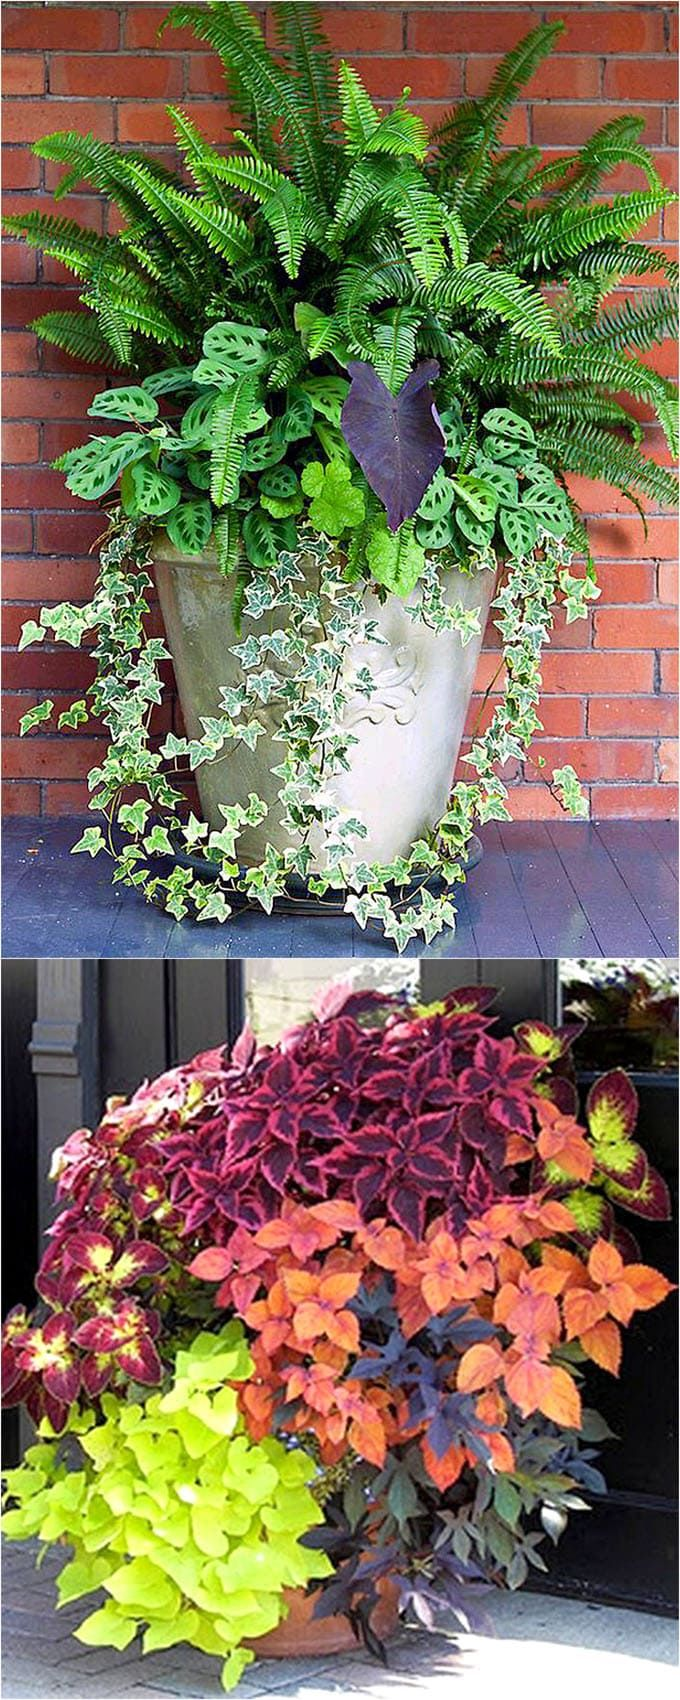 Best Shade Plants & 30+ Gorgeous Container Garden Planting Lists! Showy, colorful and easy care shade plants and container gardens with vibrant foliage and flowers. 30+ designer plant lists to create gorgeous gardens with shade loving plants ! - A Piece Of Rainbow